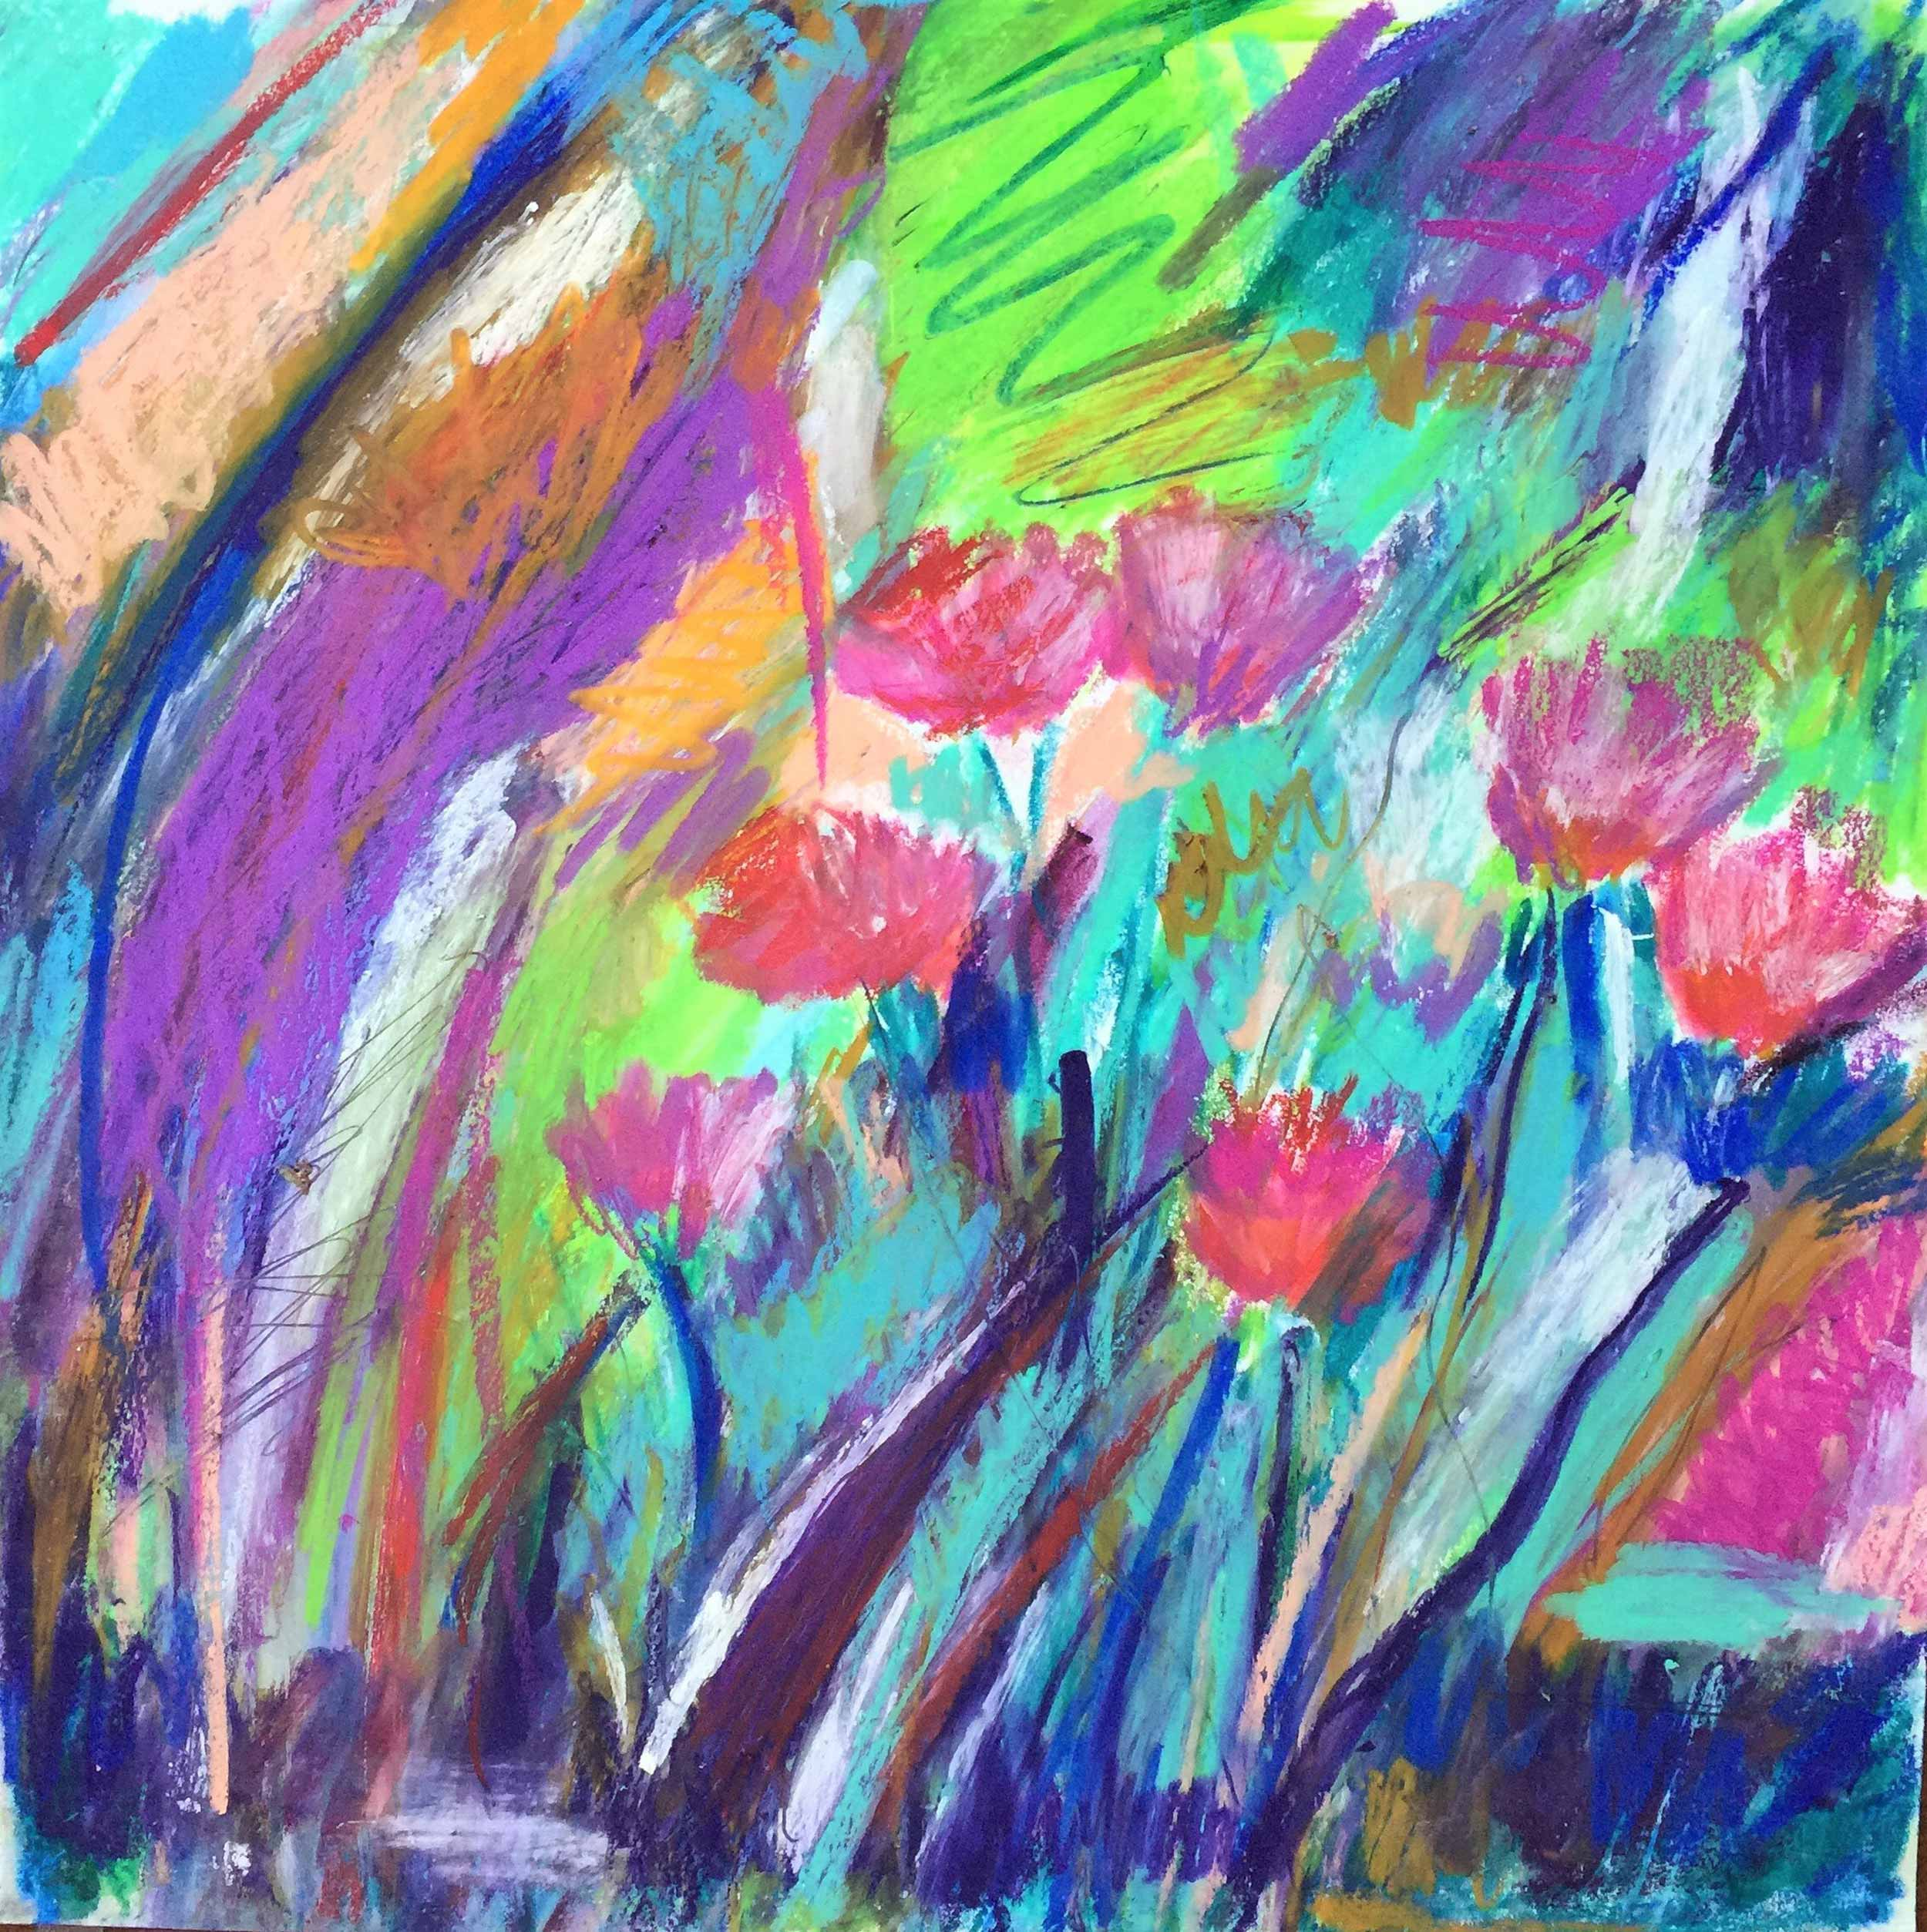 This oil pastel sketch was a section from another sketch that I enlarged